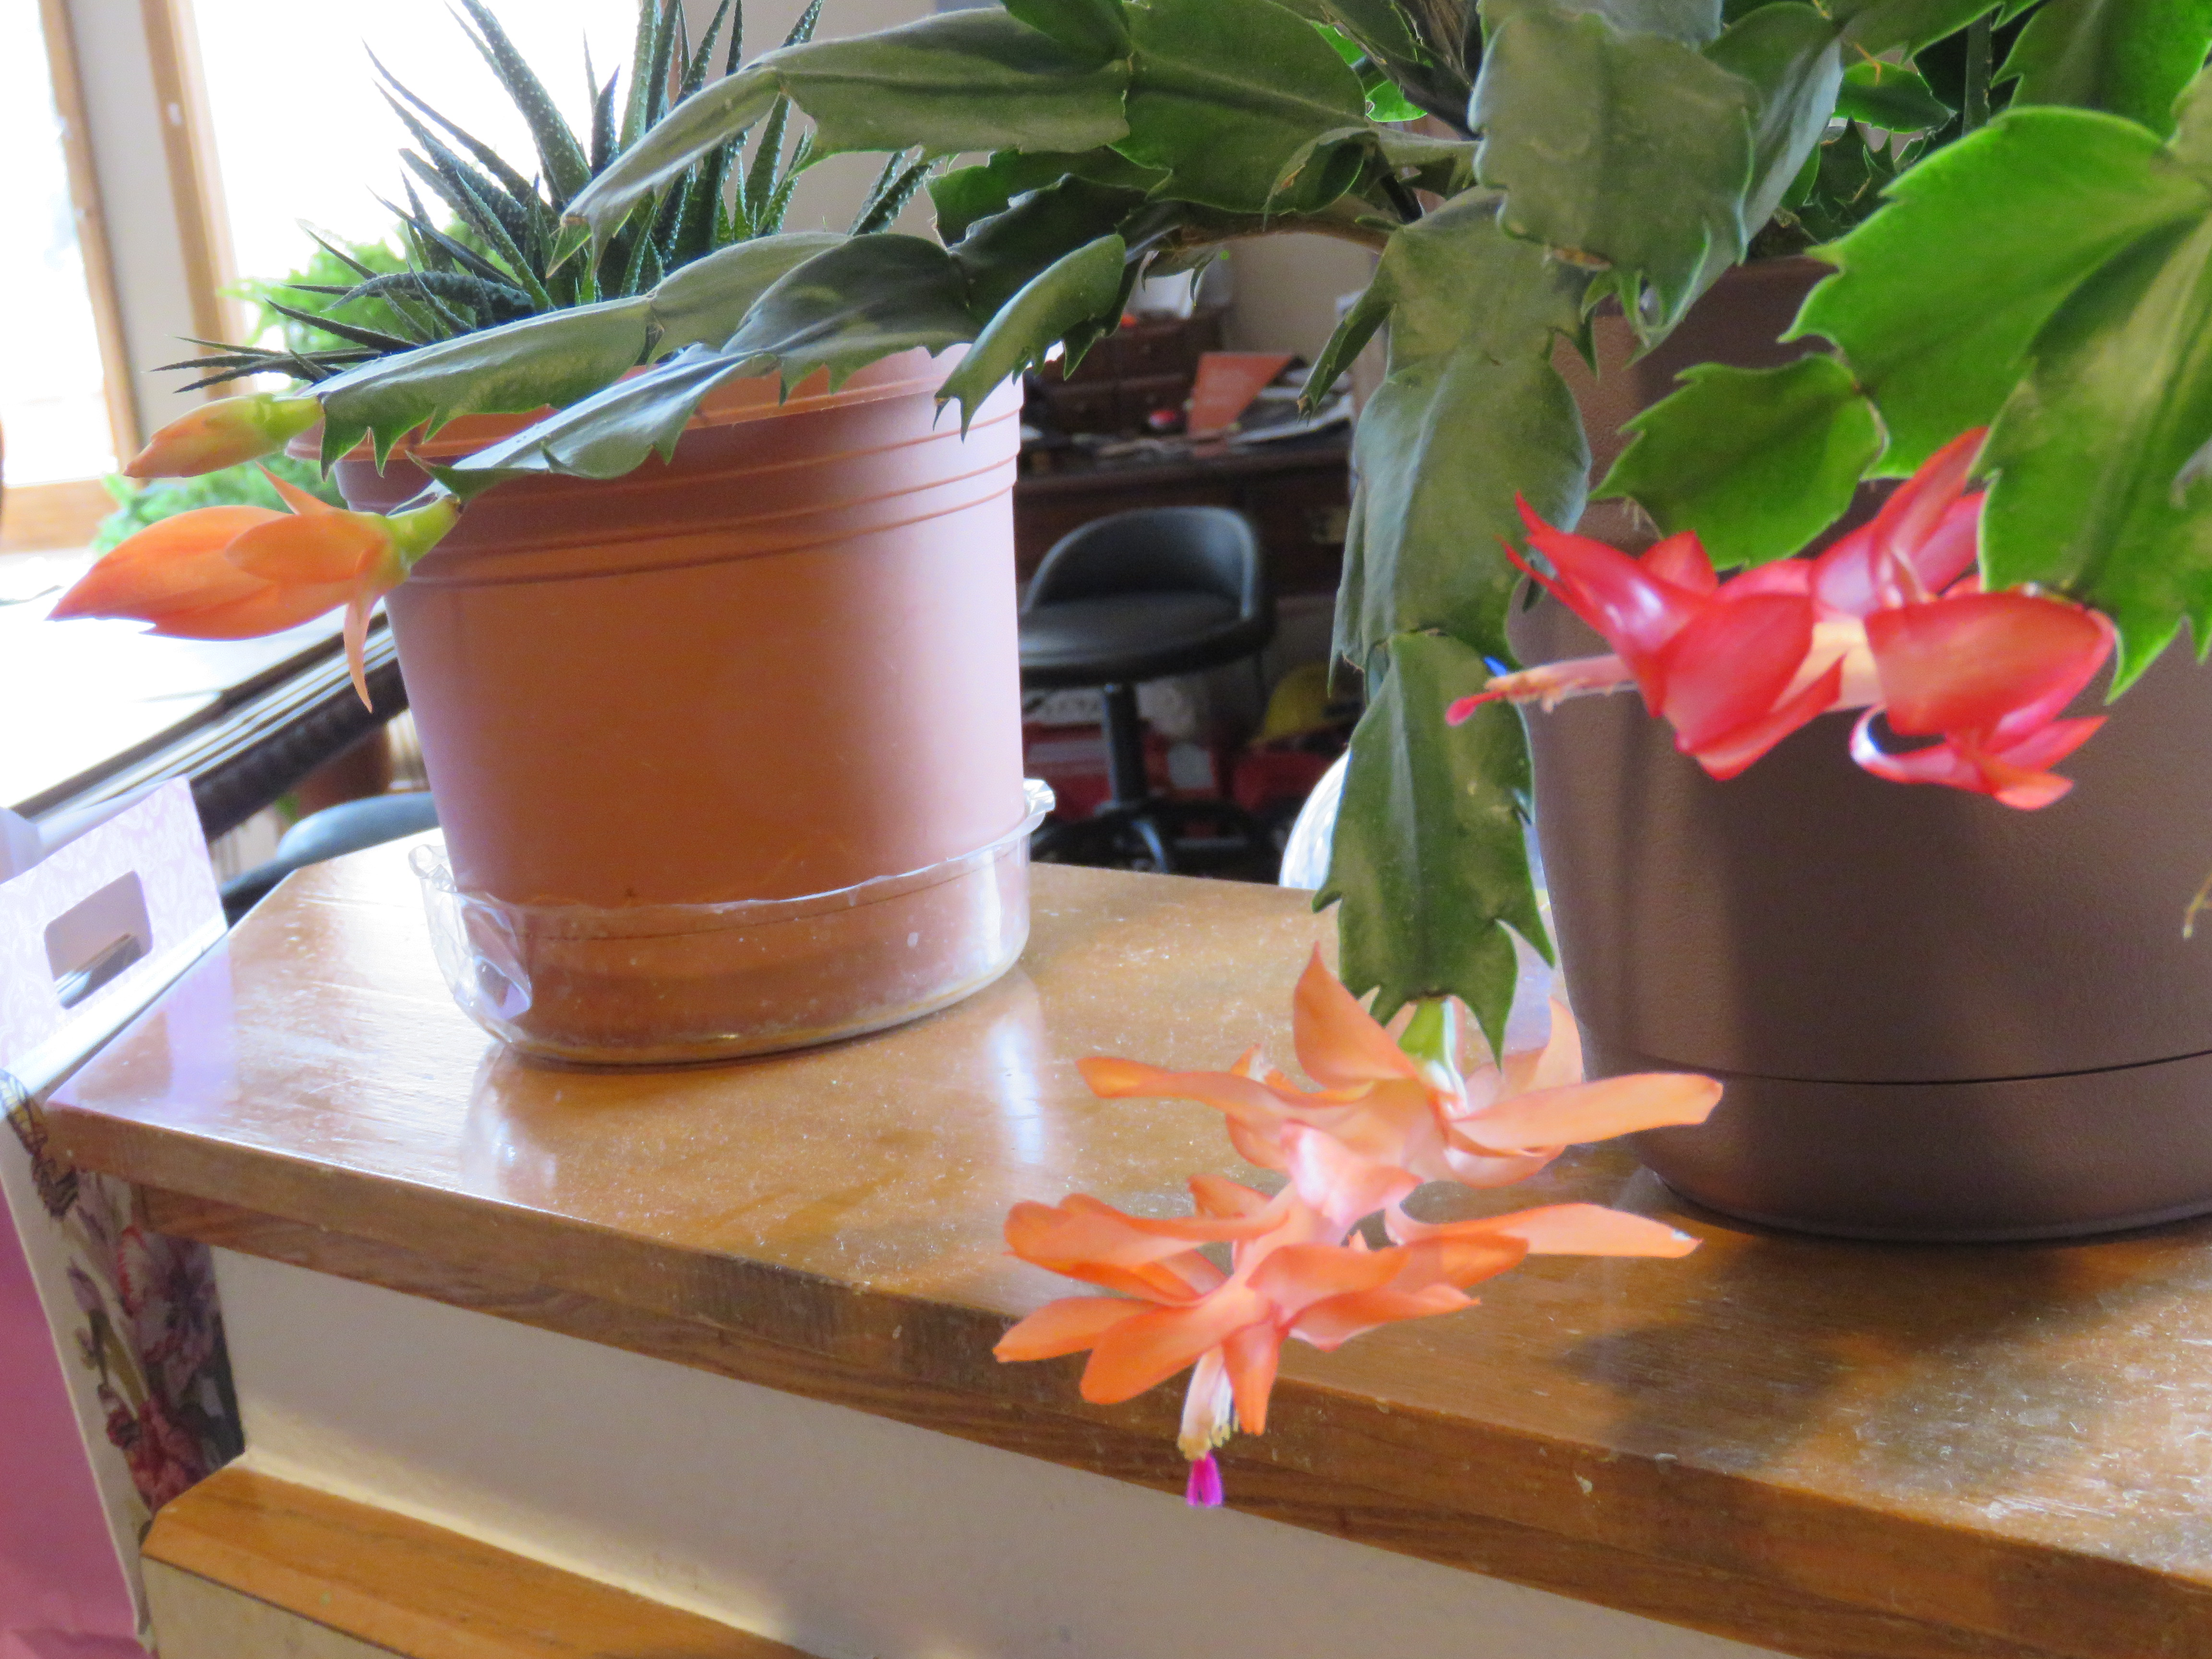 Four Christmas cactus blooms